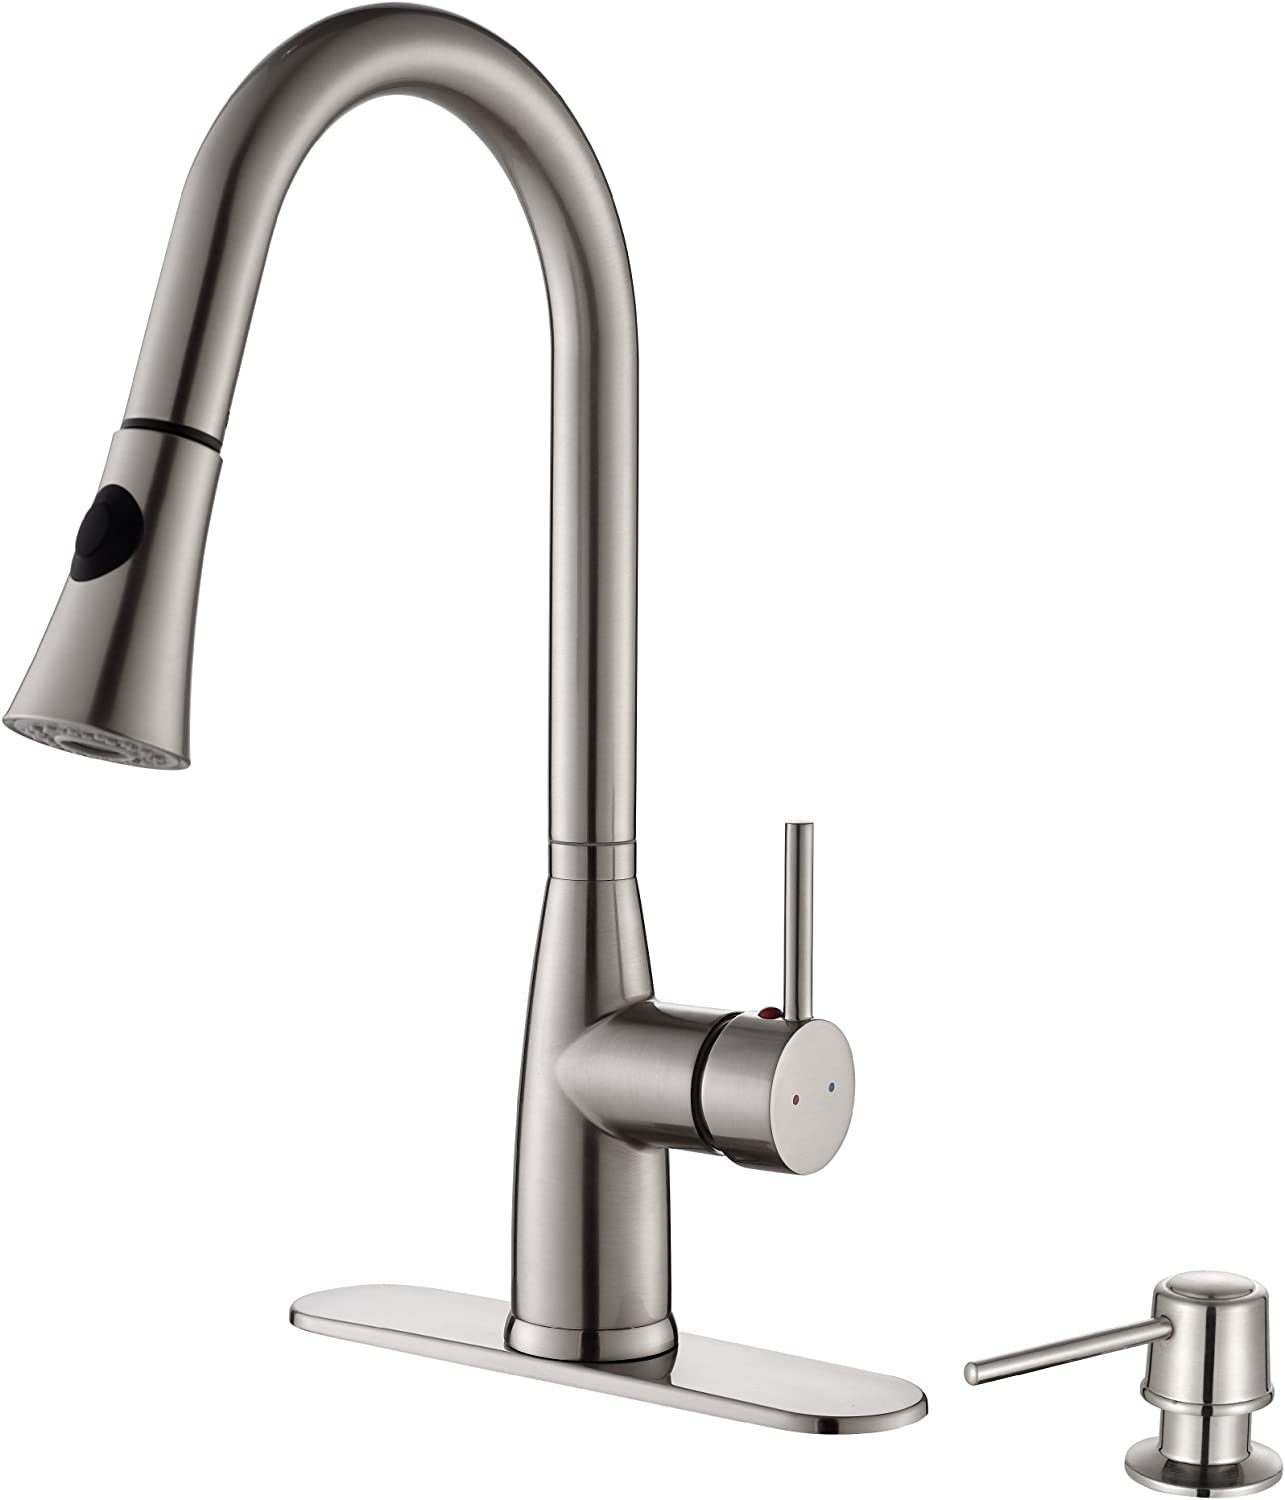 KPF-2300 Kraus Single Lever Pull-down Kitchen Faucet and Soap Dispenser  Stainless Steel Finish